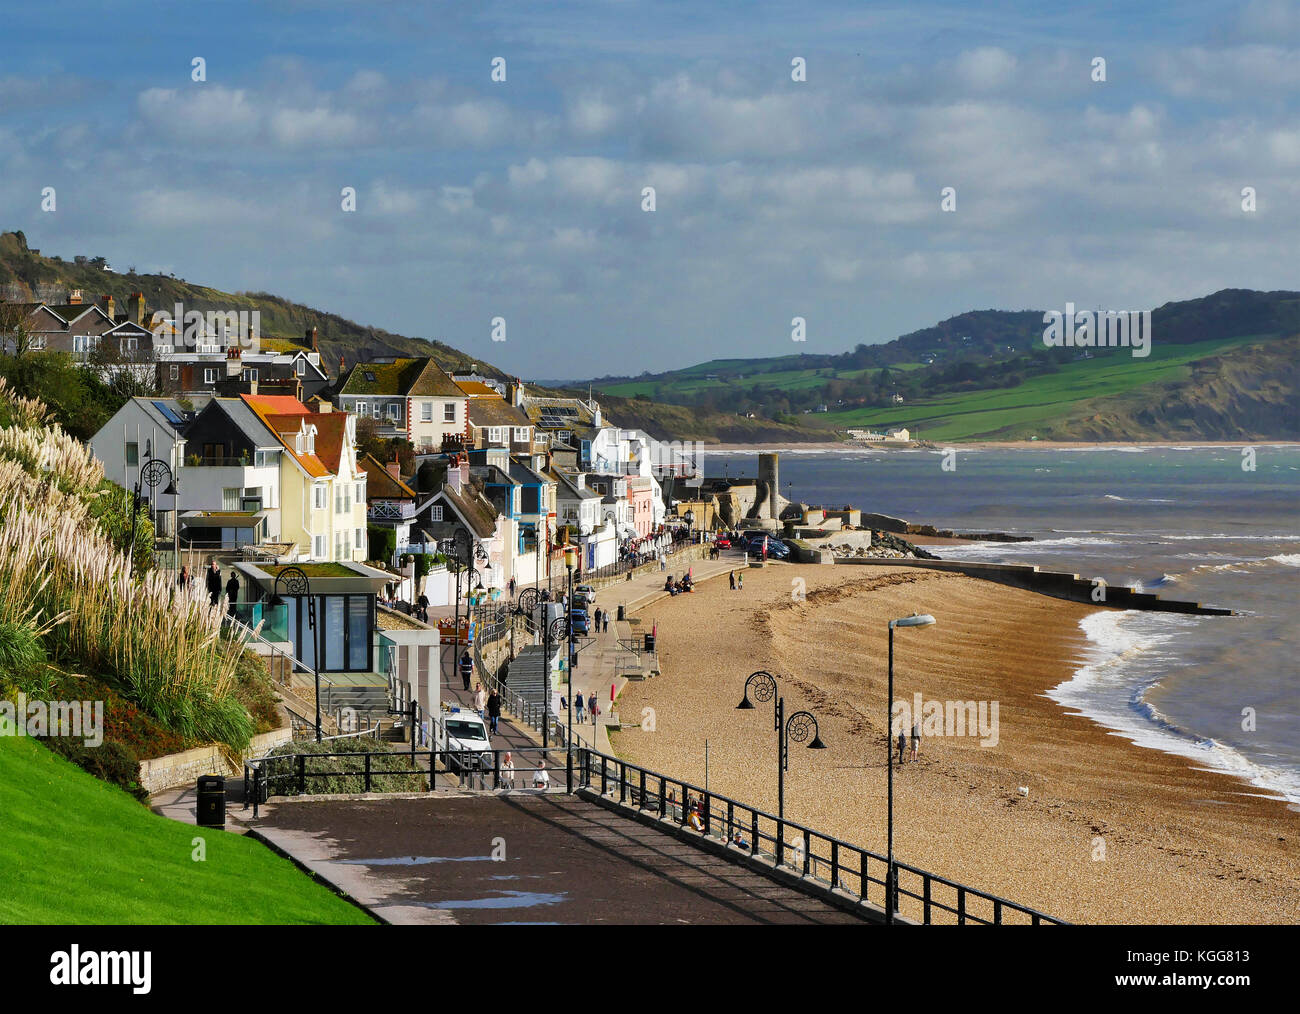 View of Lyme Regis in Dorset looking towards Charmouth. - Stock Image